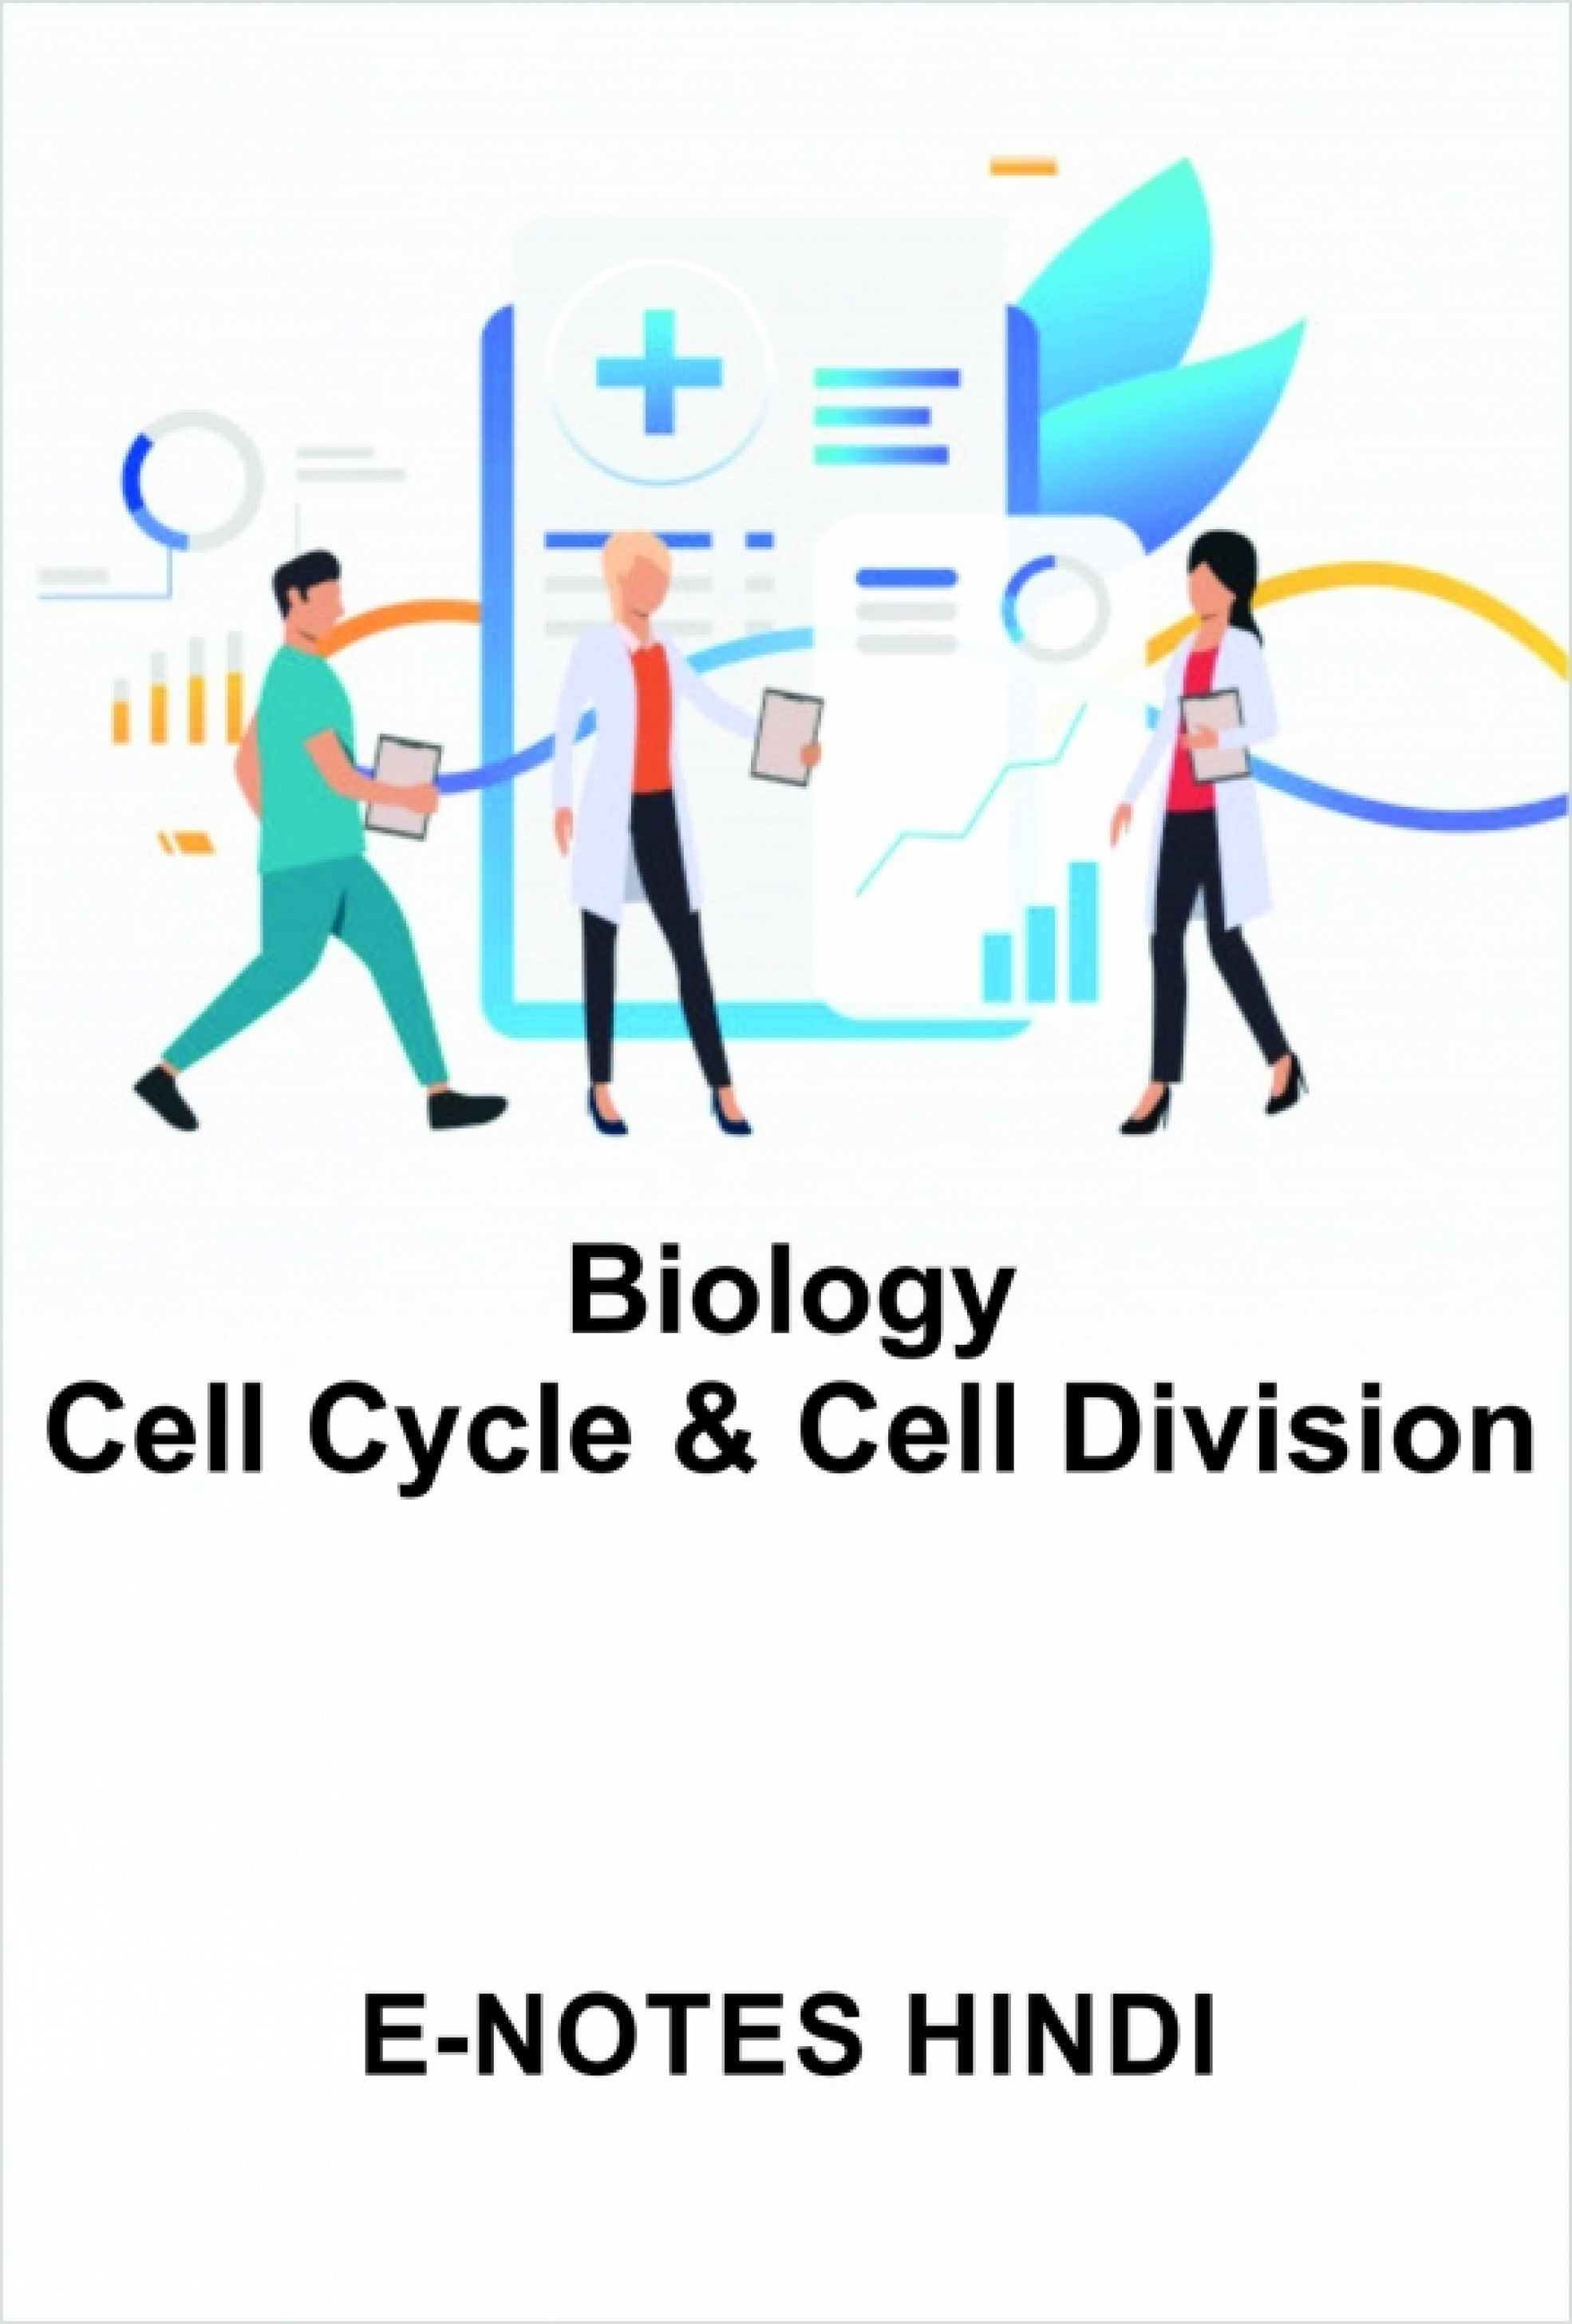 Hindi_Cell Cycle & Cell Division